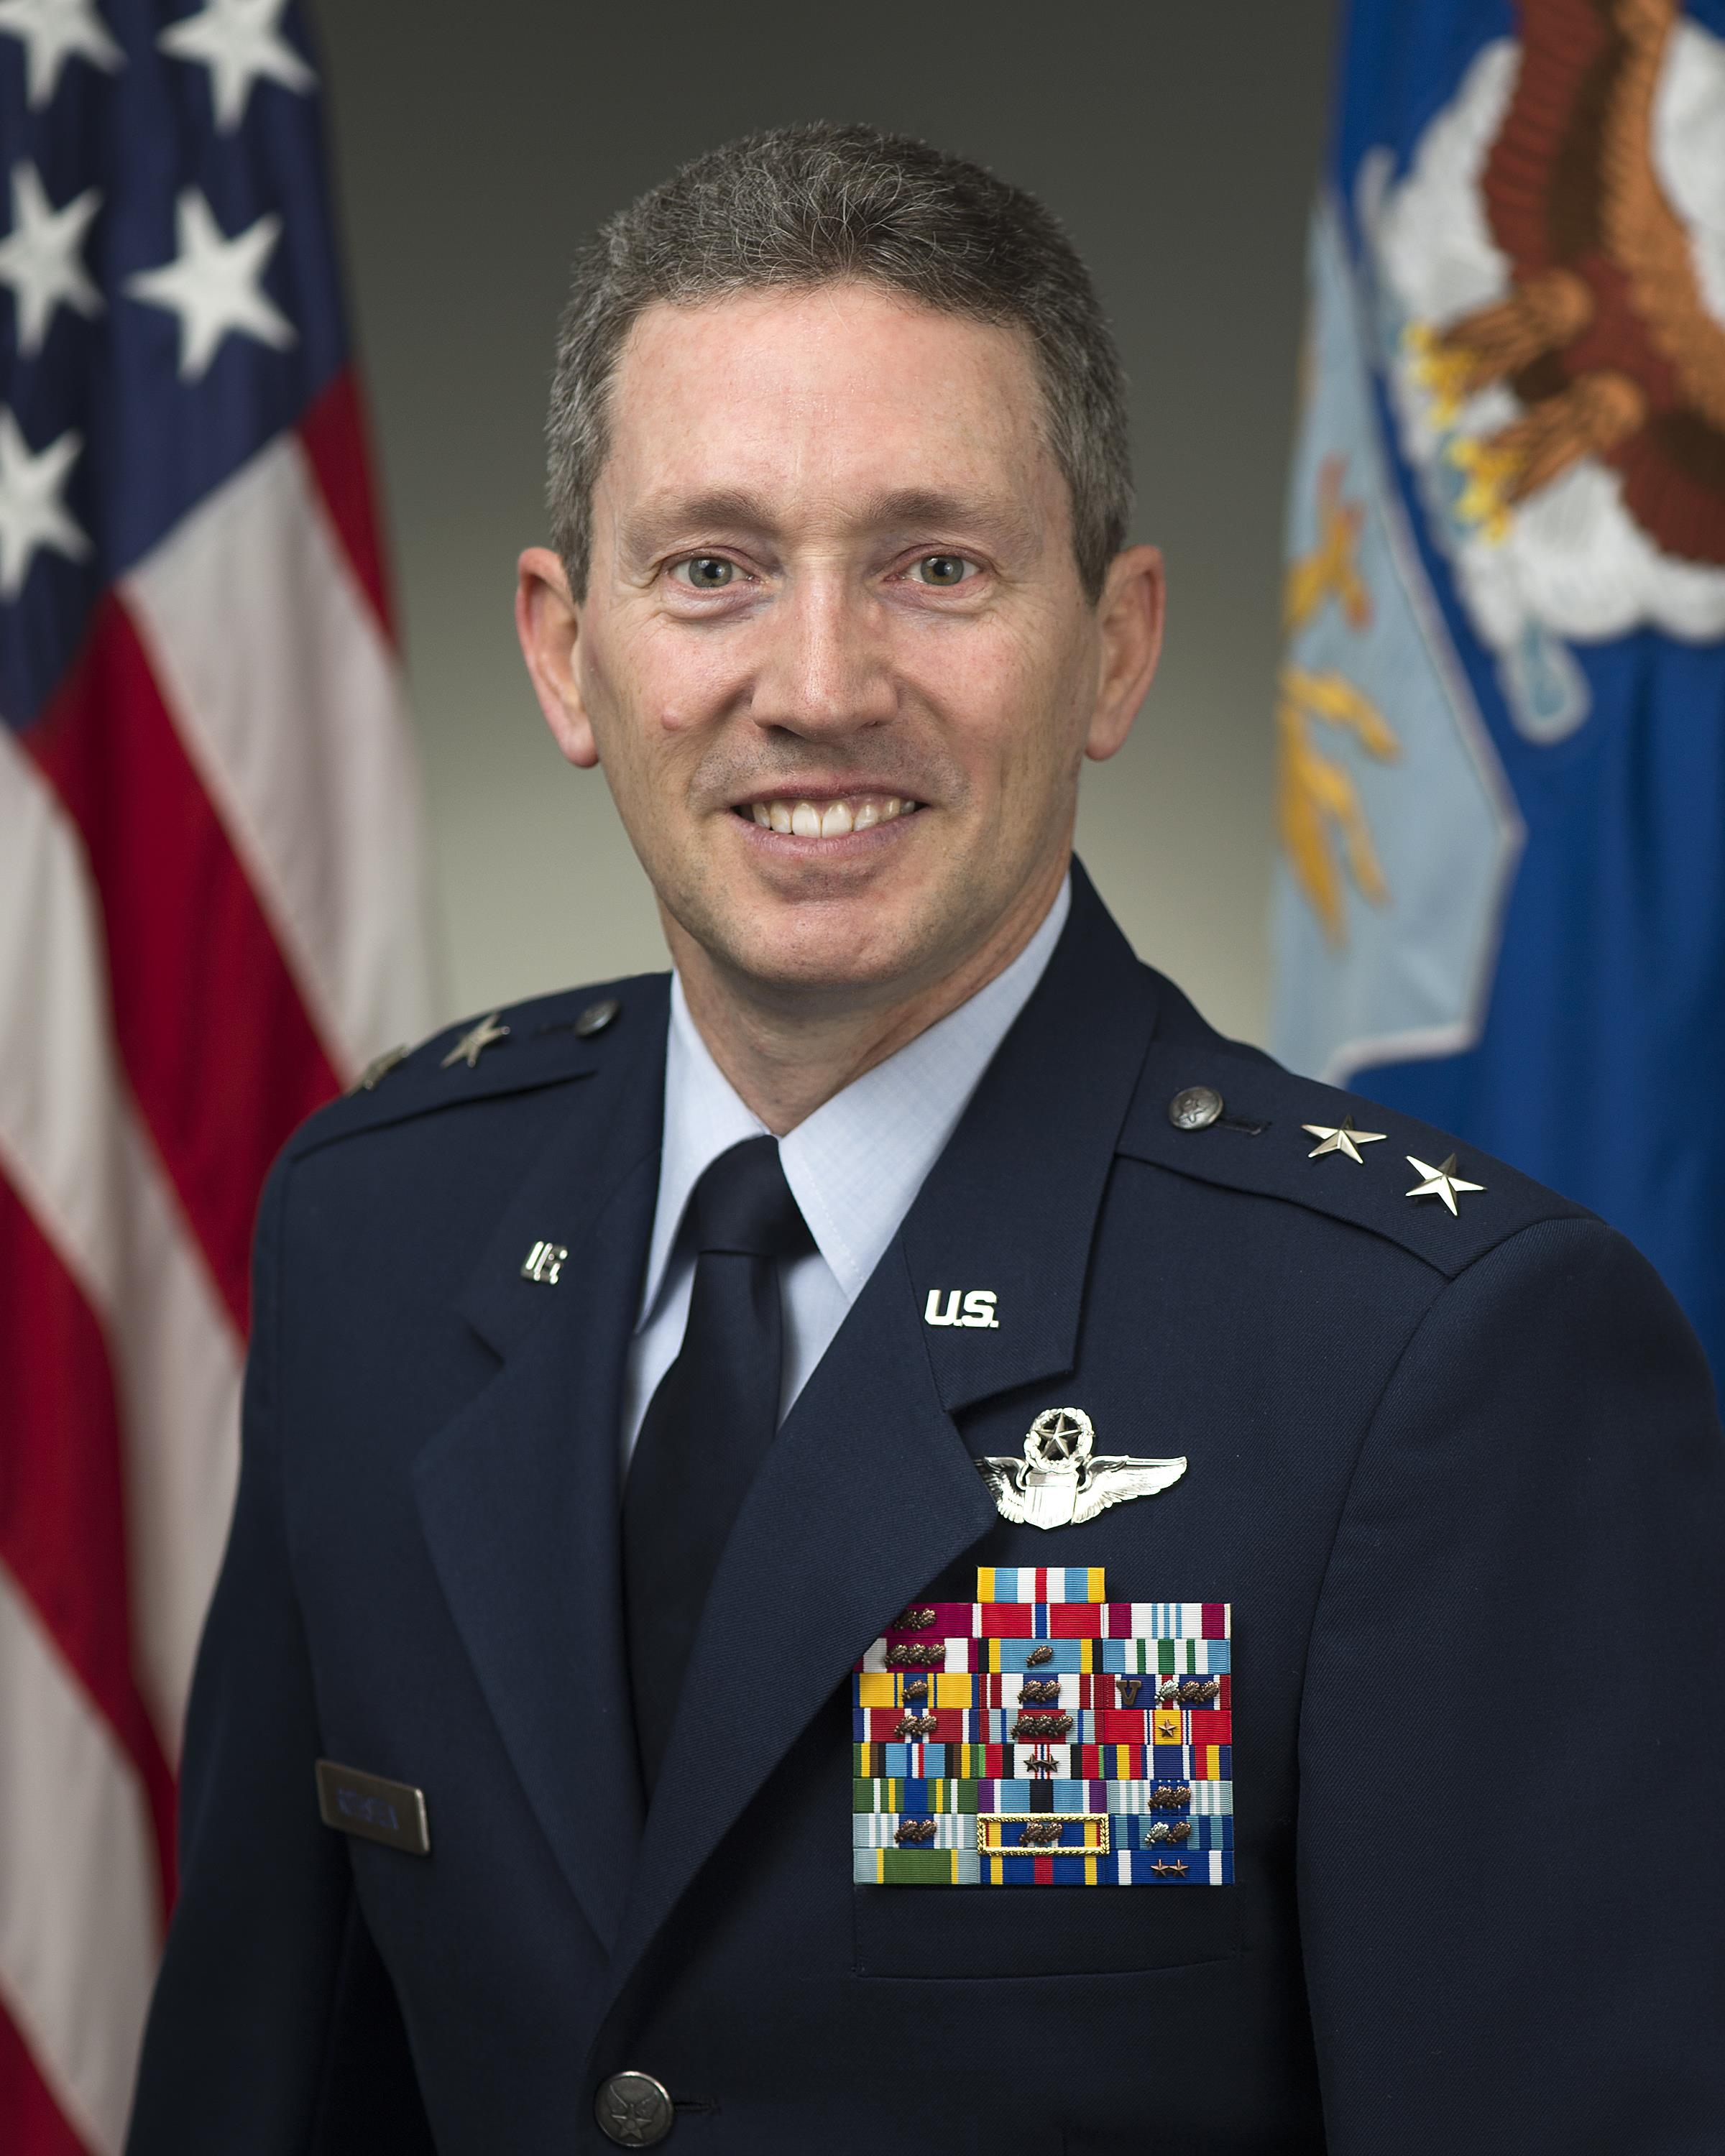 Biographies: MAJOR GENERAL MICHAEL D. ROTHSTEIN > U.S. Air Force